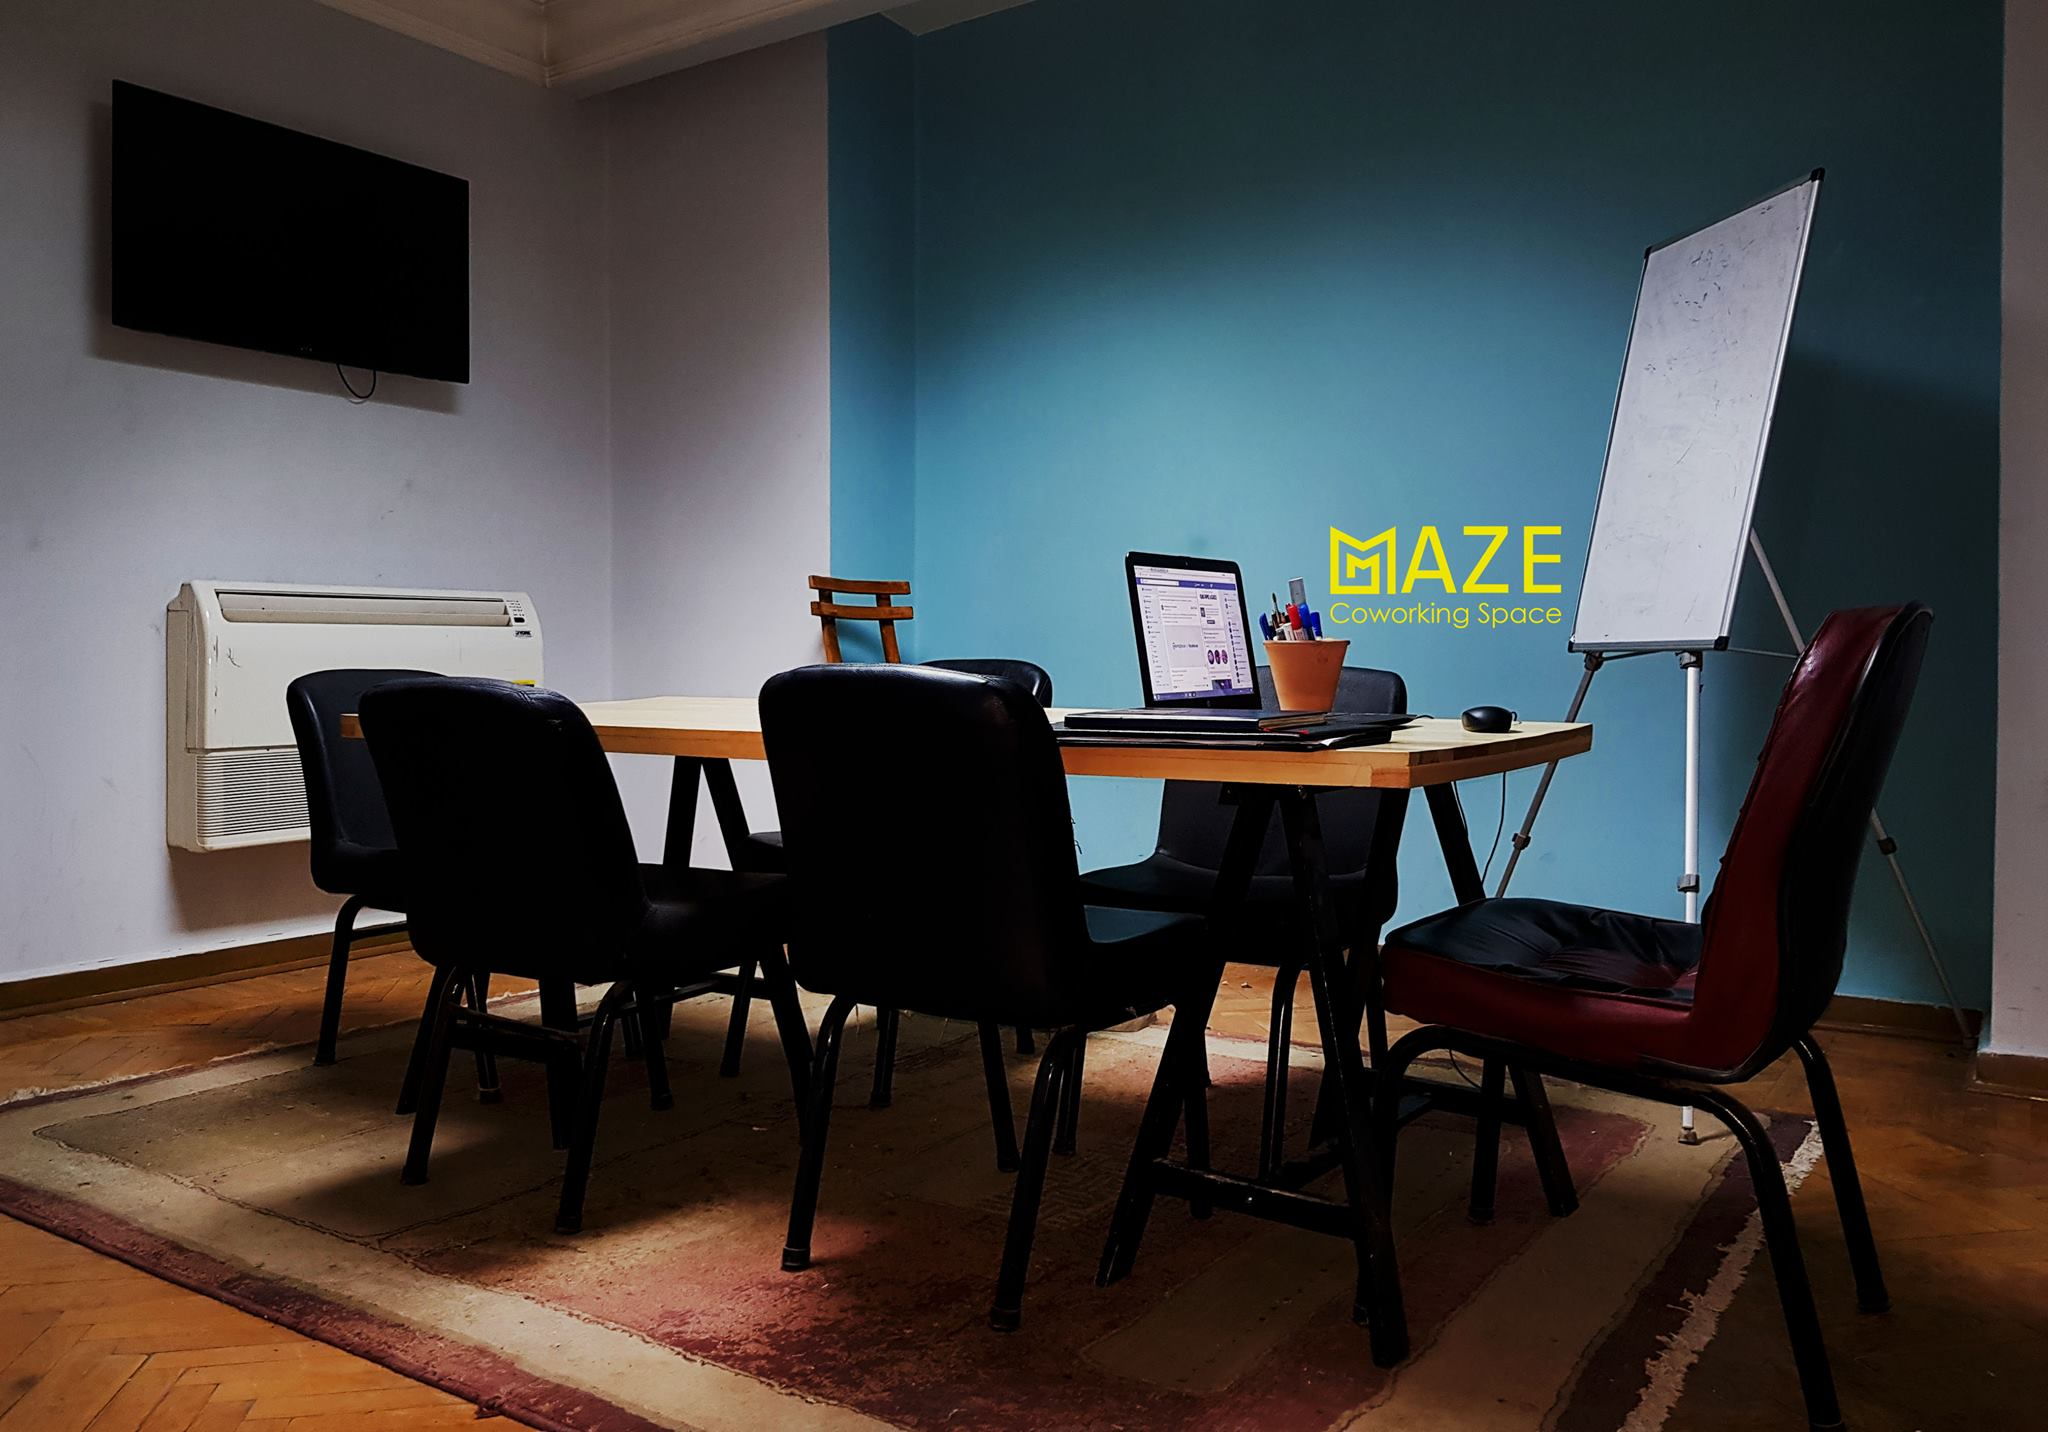 Maze Coworking Space, Giza - Read Reviews Online